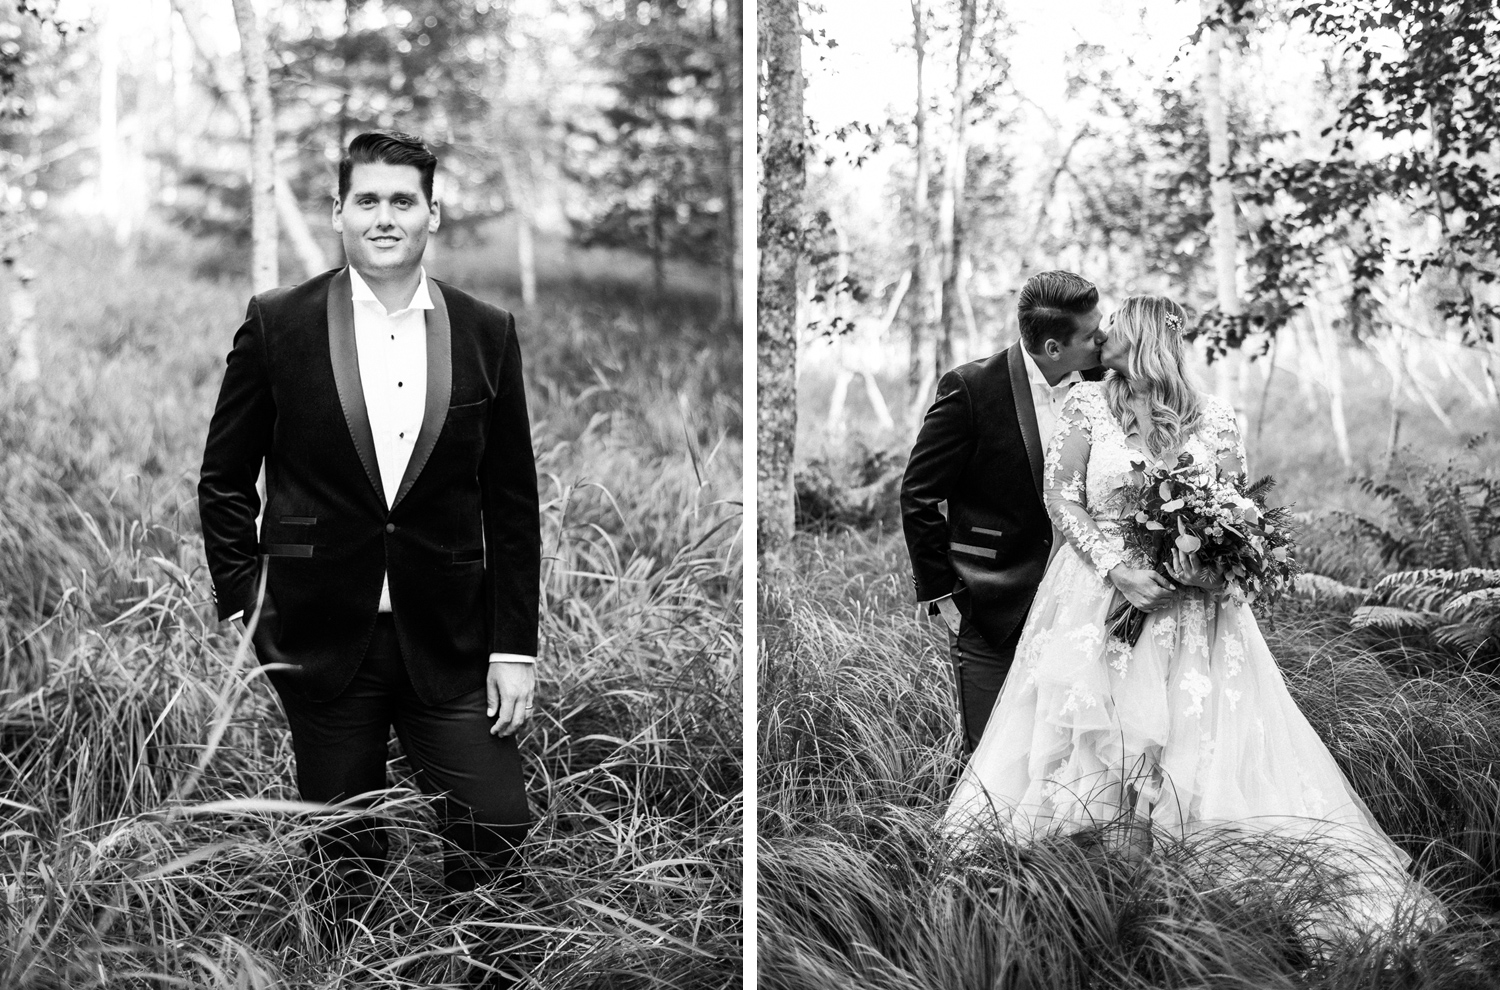 026-siousca-maineweddingphotographer-backyardwedding-mainewedding.jpg